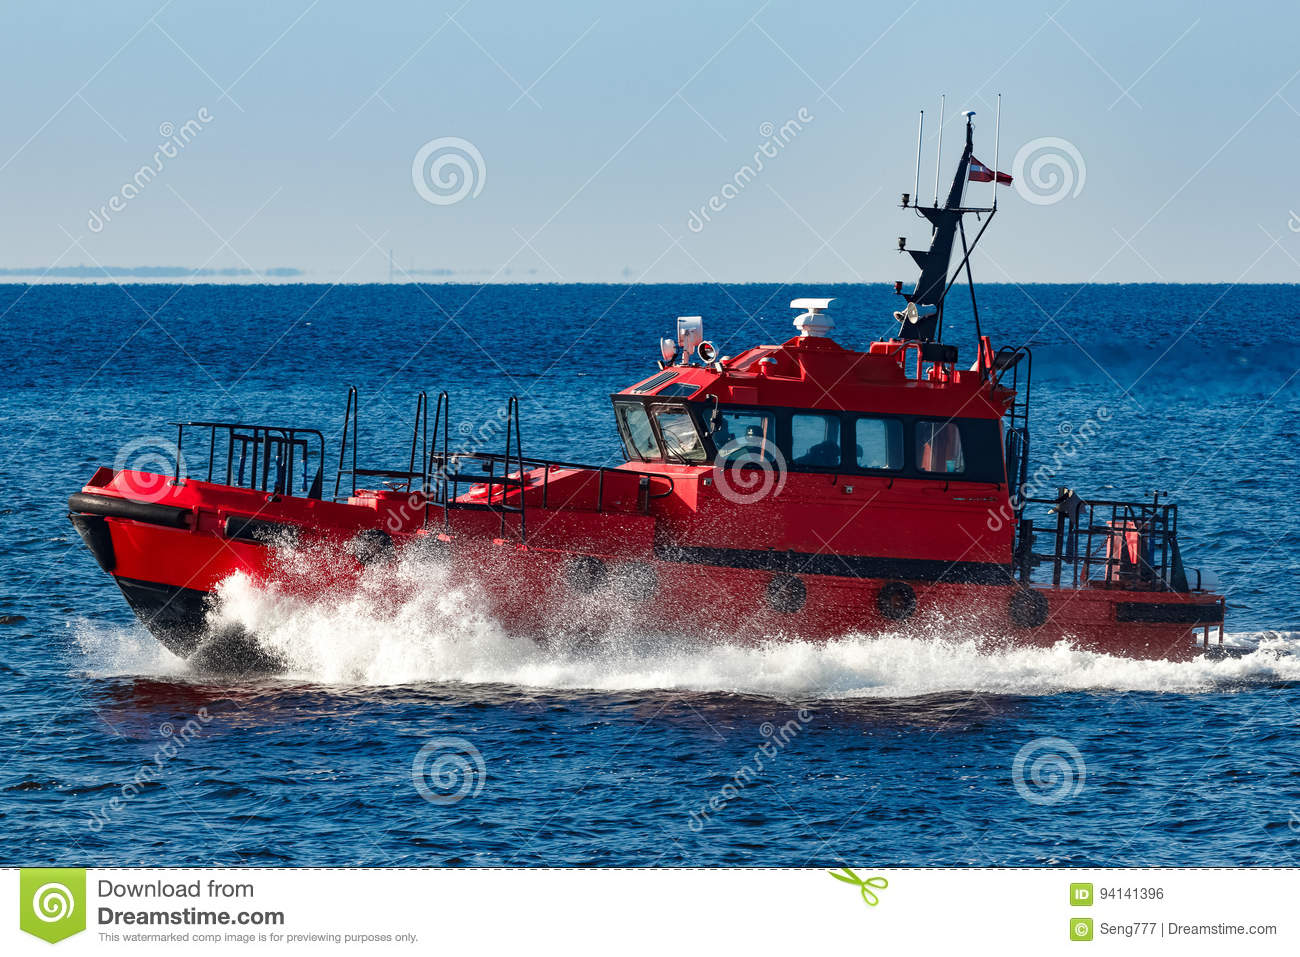 Red pilot boat stock photo  Image of marine, service - 94141396